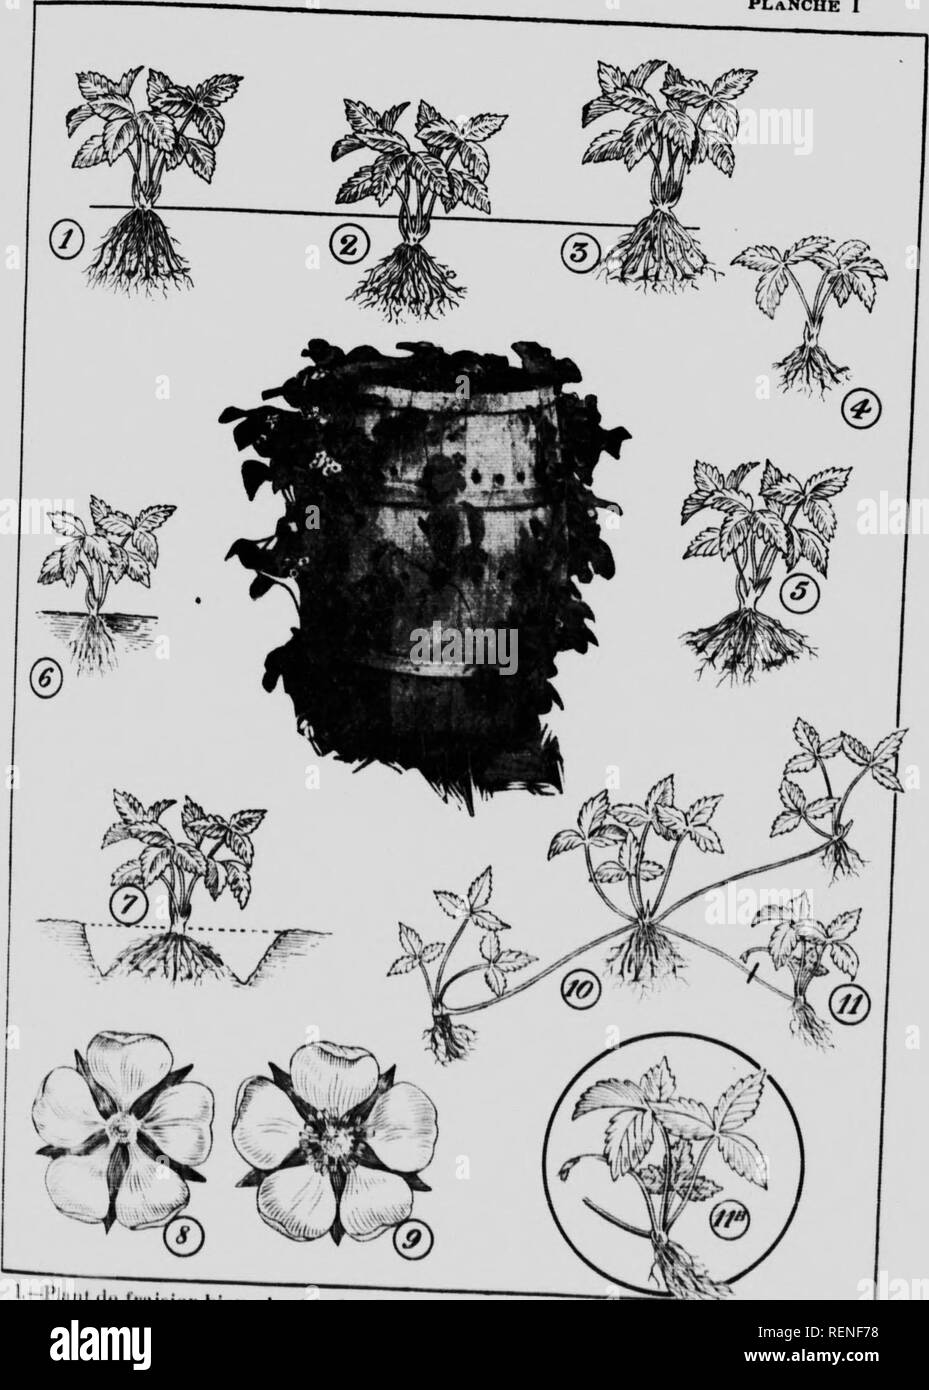 . De la culture des arbustres fruitiers [microforme]. Arboriculture fruitière; Fruit-culture. PLANCHE I. ' î i ...u^h i ÎMrii pUiilt. :i.- TnilH'ntniii..'. l l»  .. ^ ri F î i ,. Please note that these images are extracted from scanned page images that may have been digitally enhanced for readability - coloration and appearance of these illustrations may not perfectly resemble the original work.. Pétraz, Francisque; Lavoie, J. -H. (Joseph-Henri), né 1887; Québec (Province). Département de l'agriculture. [Québec] : Dép. de l'agriculture - Stock Image